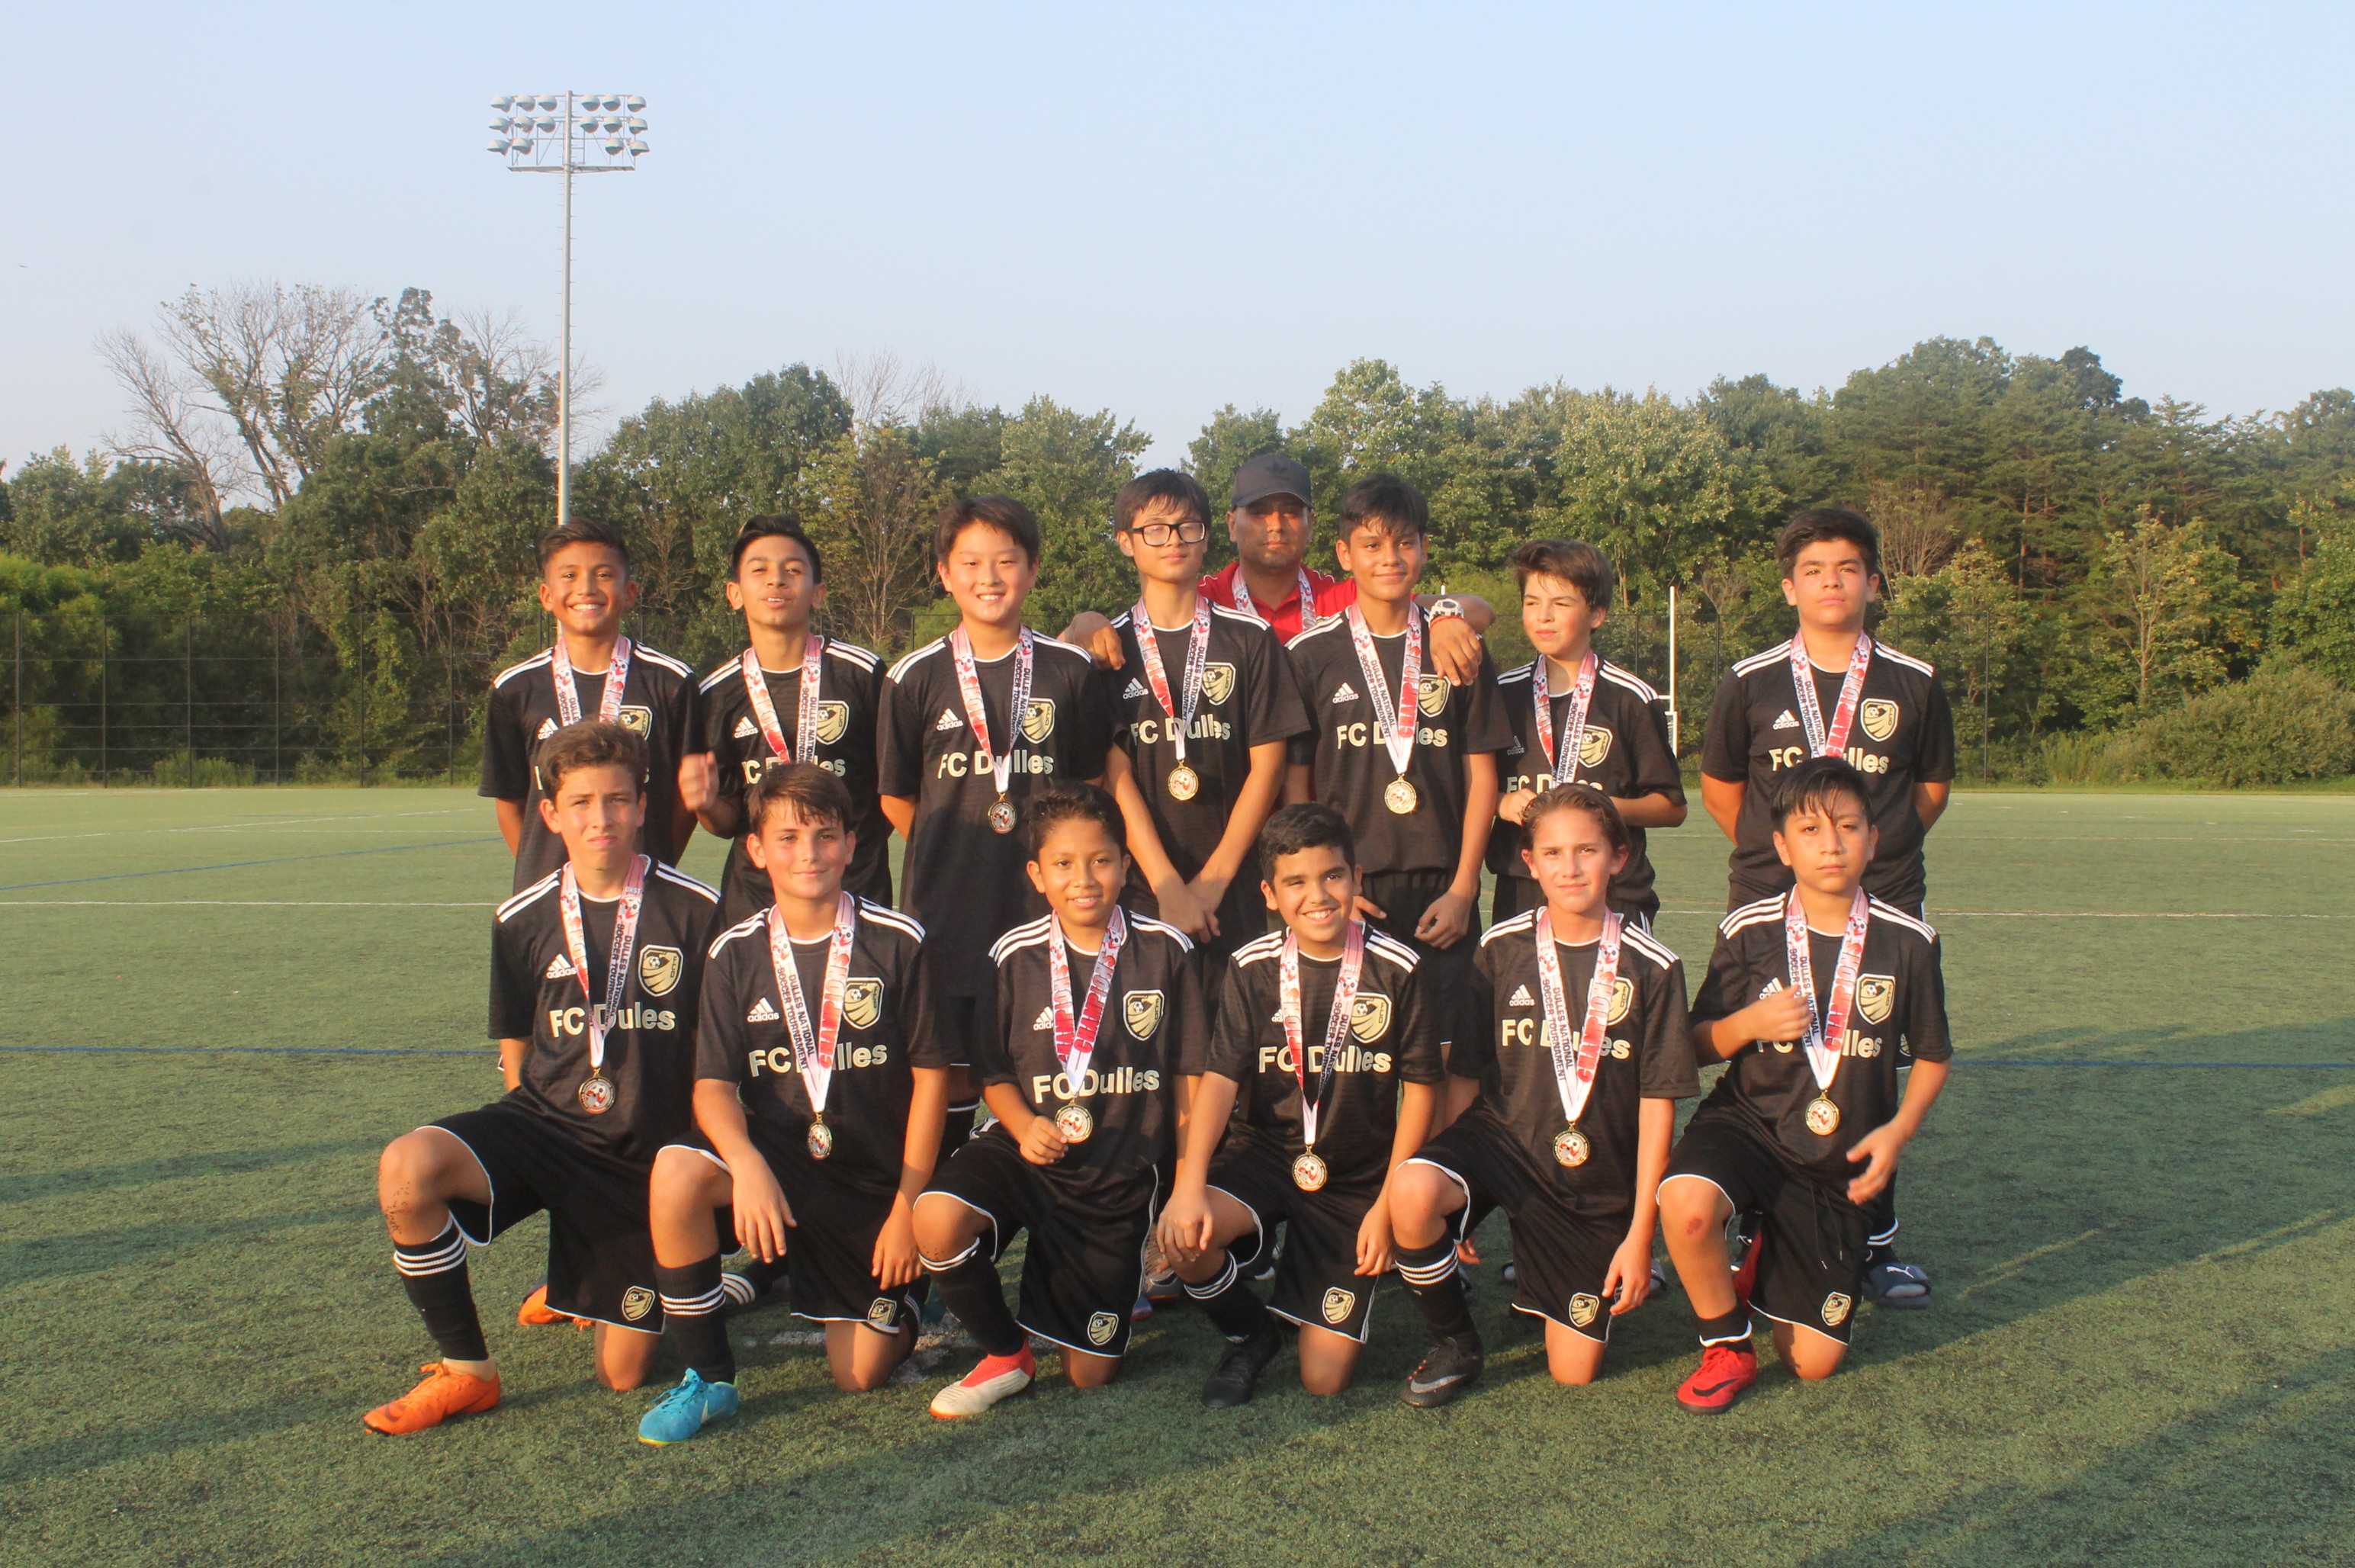 Champions! FC Dulles United Academy Gold 05 @ DNST August 25-26, 2018